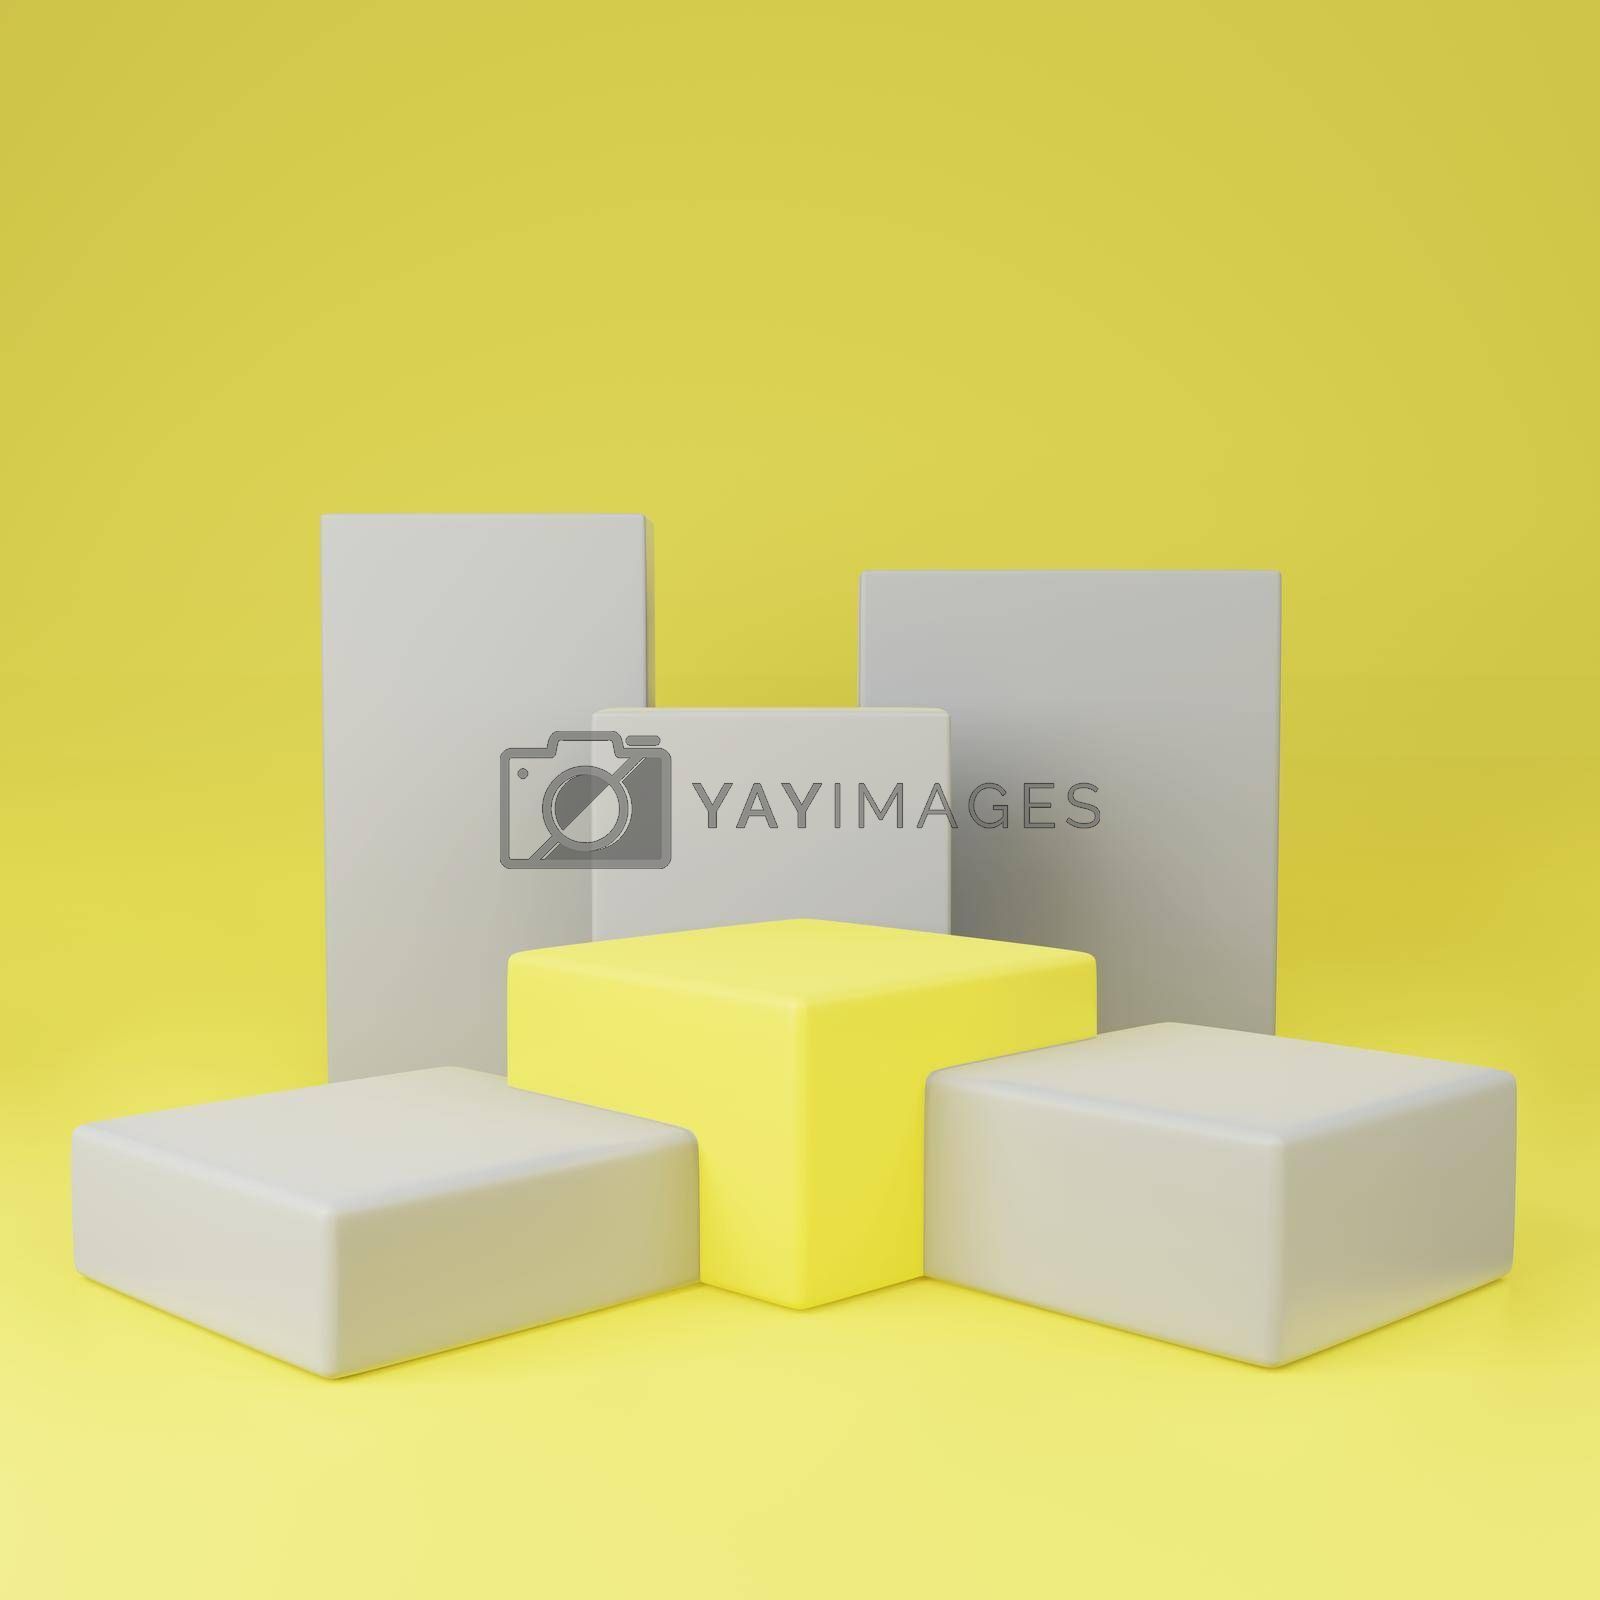 Royalty free image of Yellow cube podium between gray on yellow background copy space by eaglesky